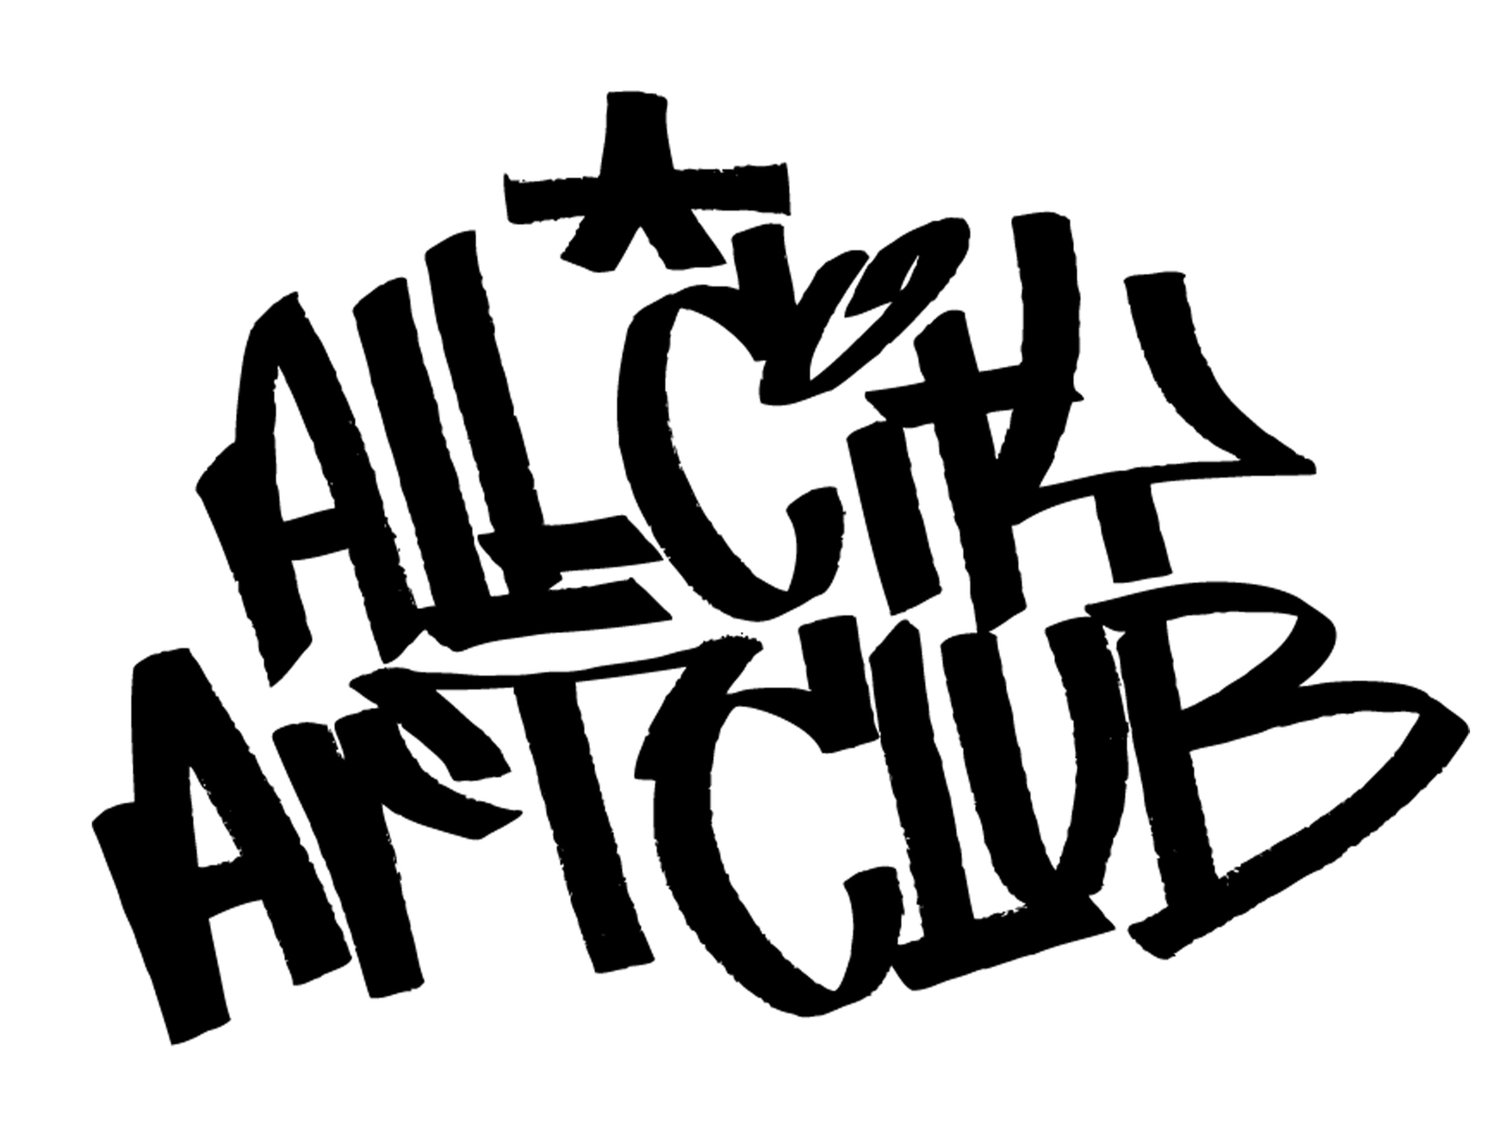 All City Art Club